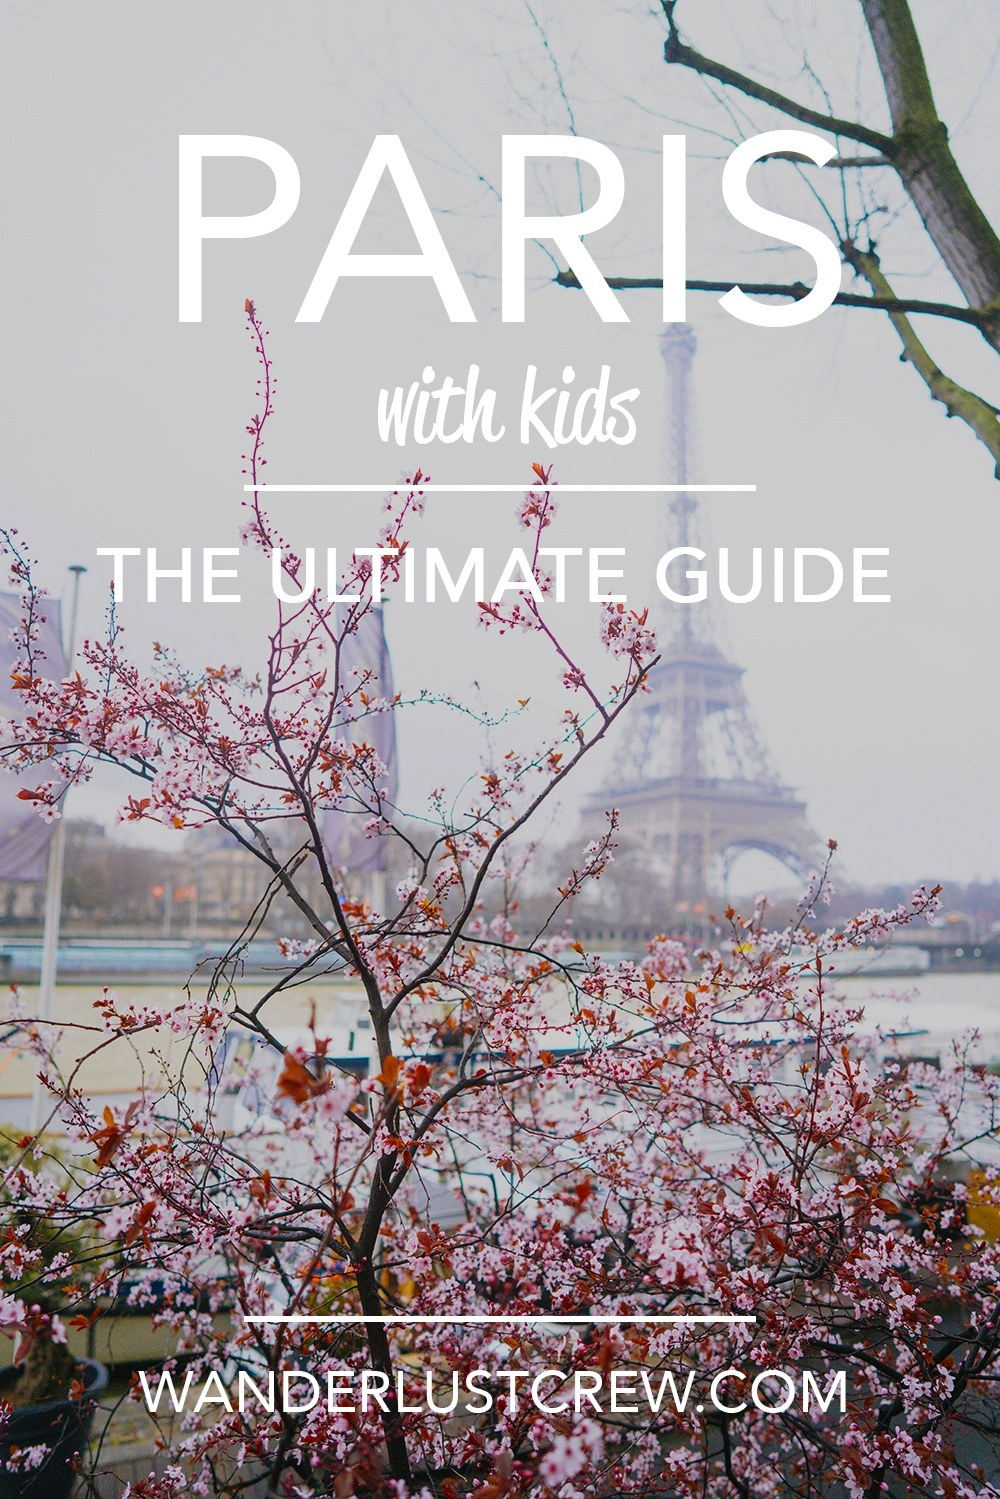 Paris with Kids The Ultimate Guide by wanderlustcrew.com